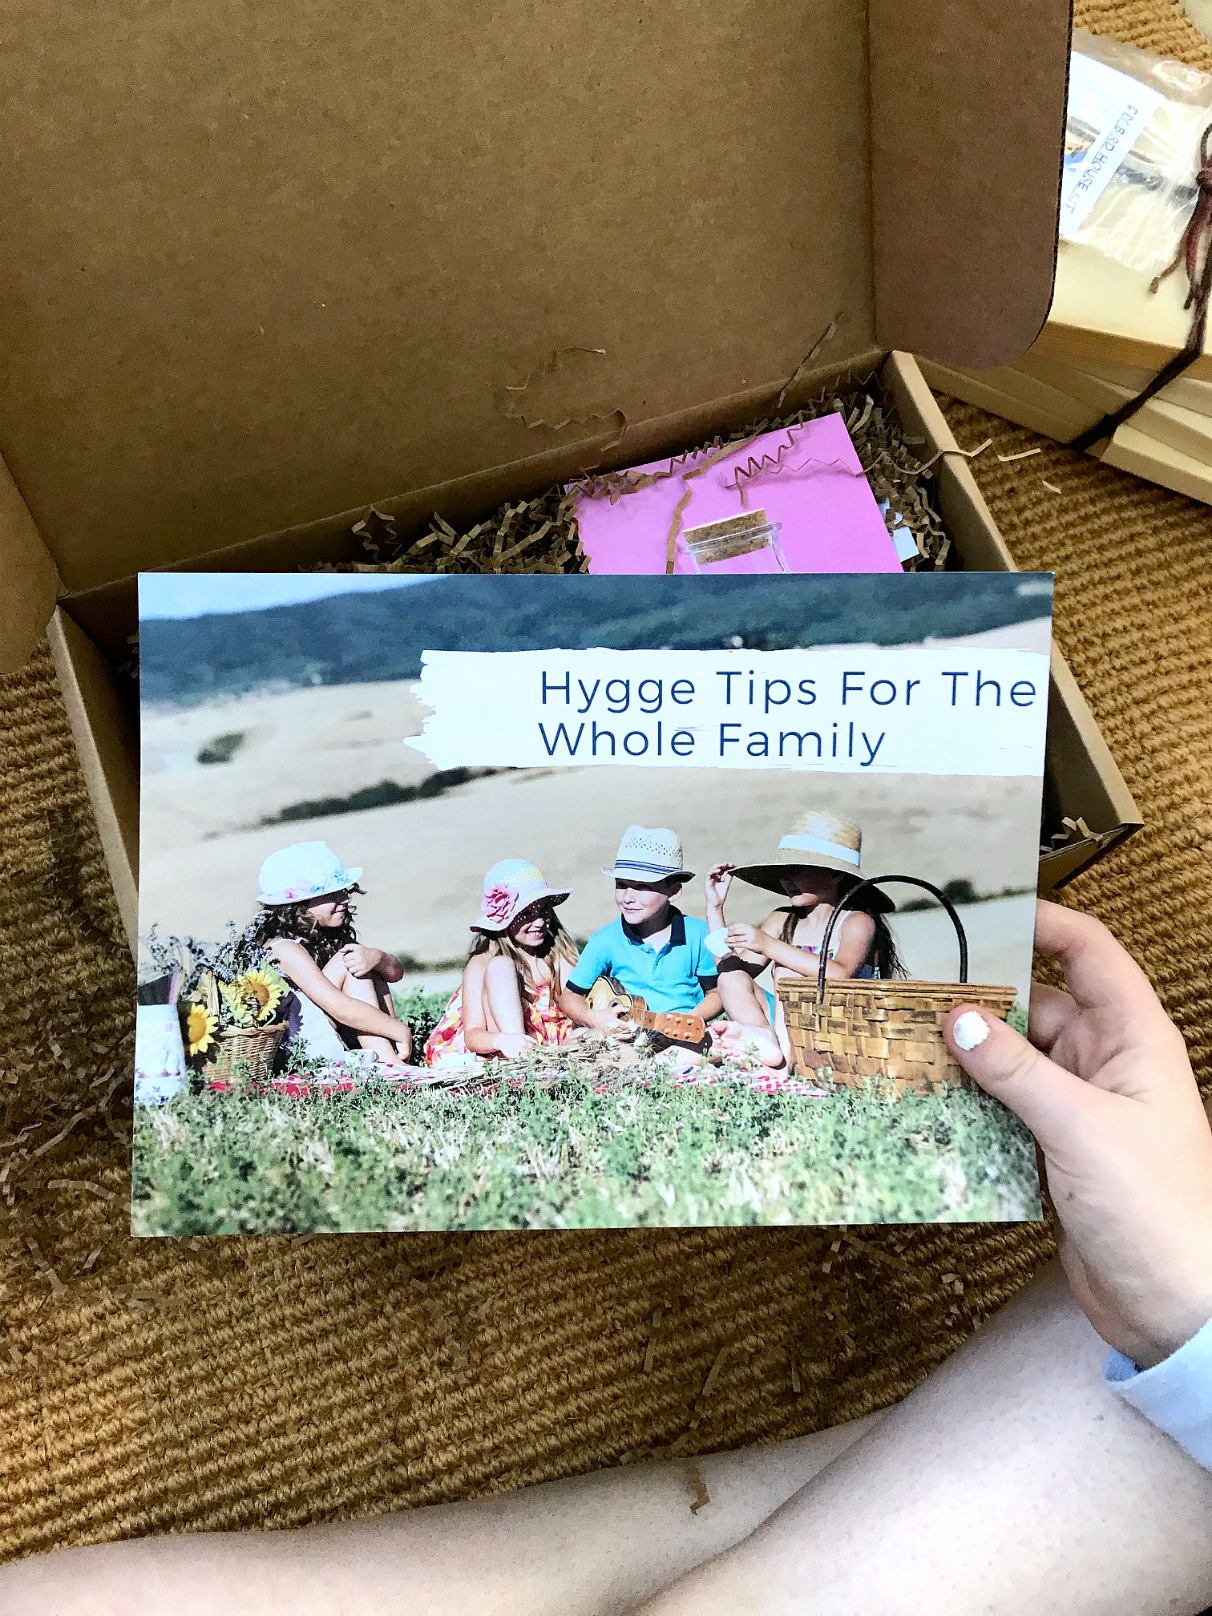 Kids Hygge Box Hygge Tips for the Whole Family